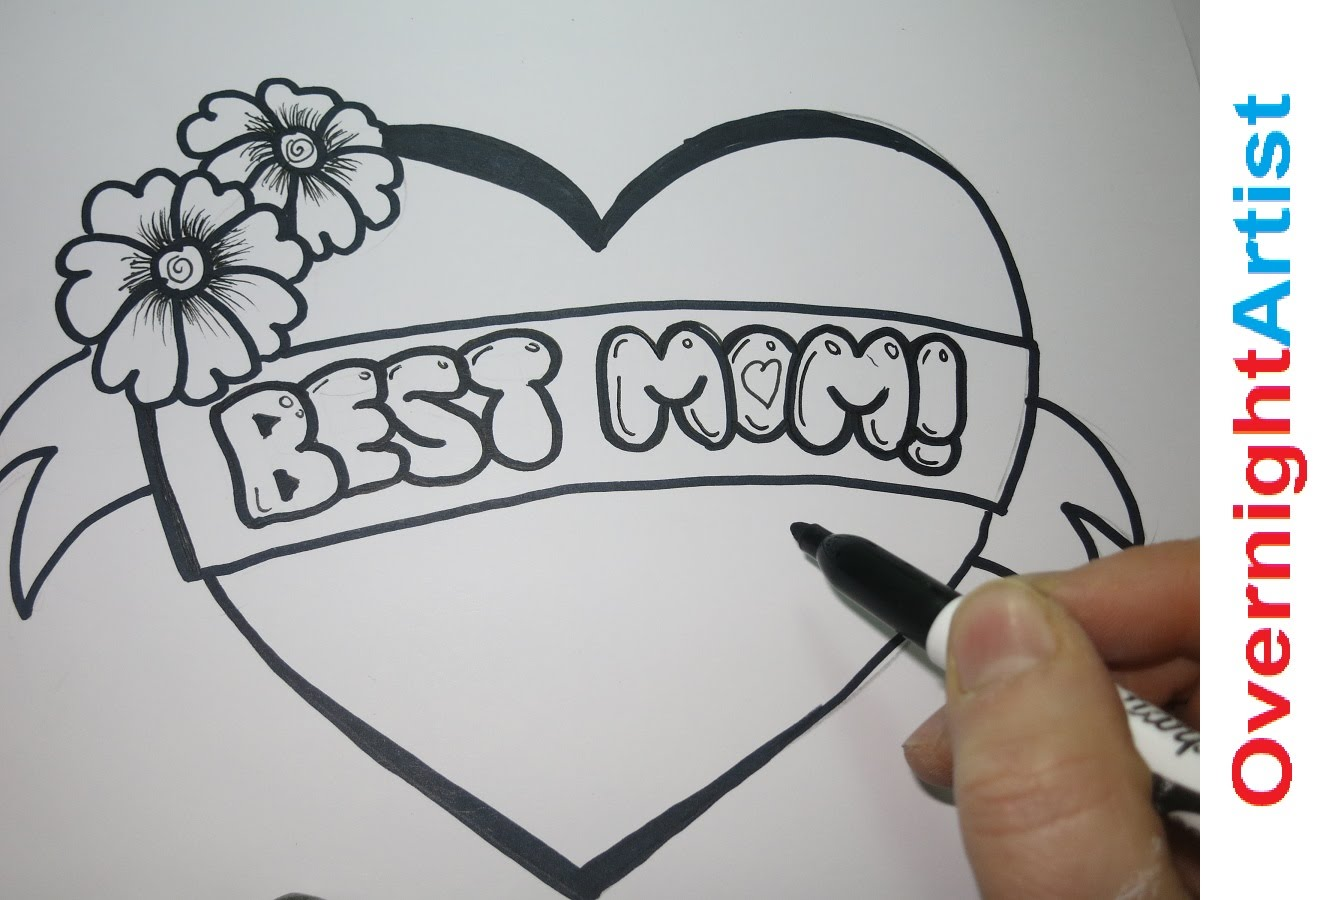 mother's birthday drawings ; maxresdefault